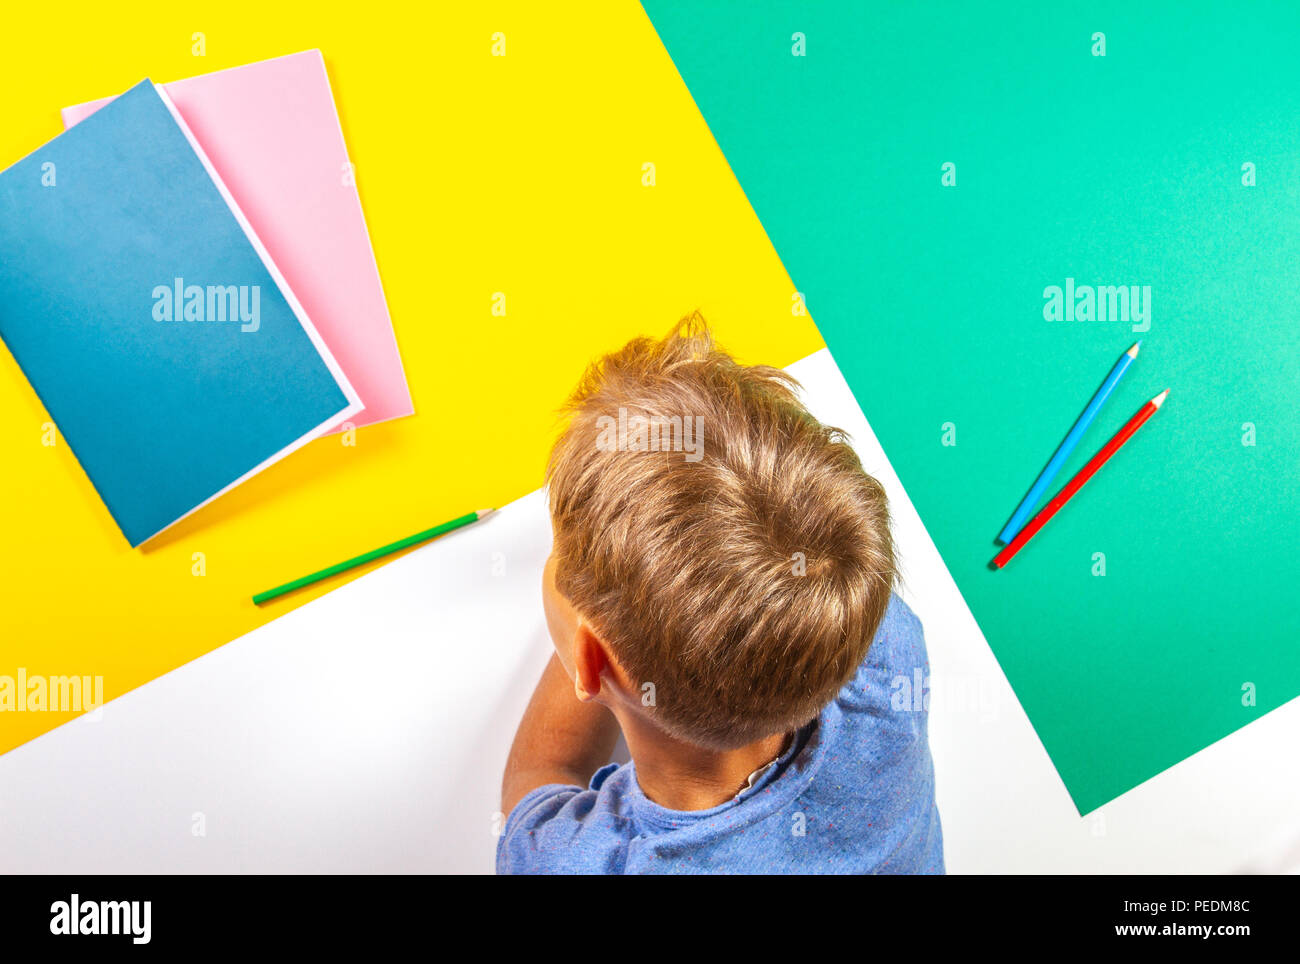 Kid with books notebooks pencils over colorful background Stock Photo